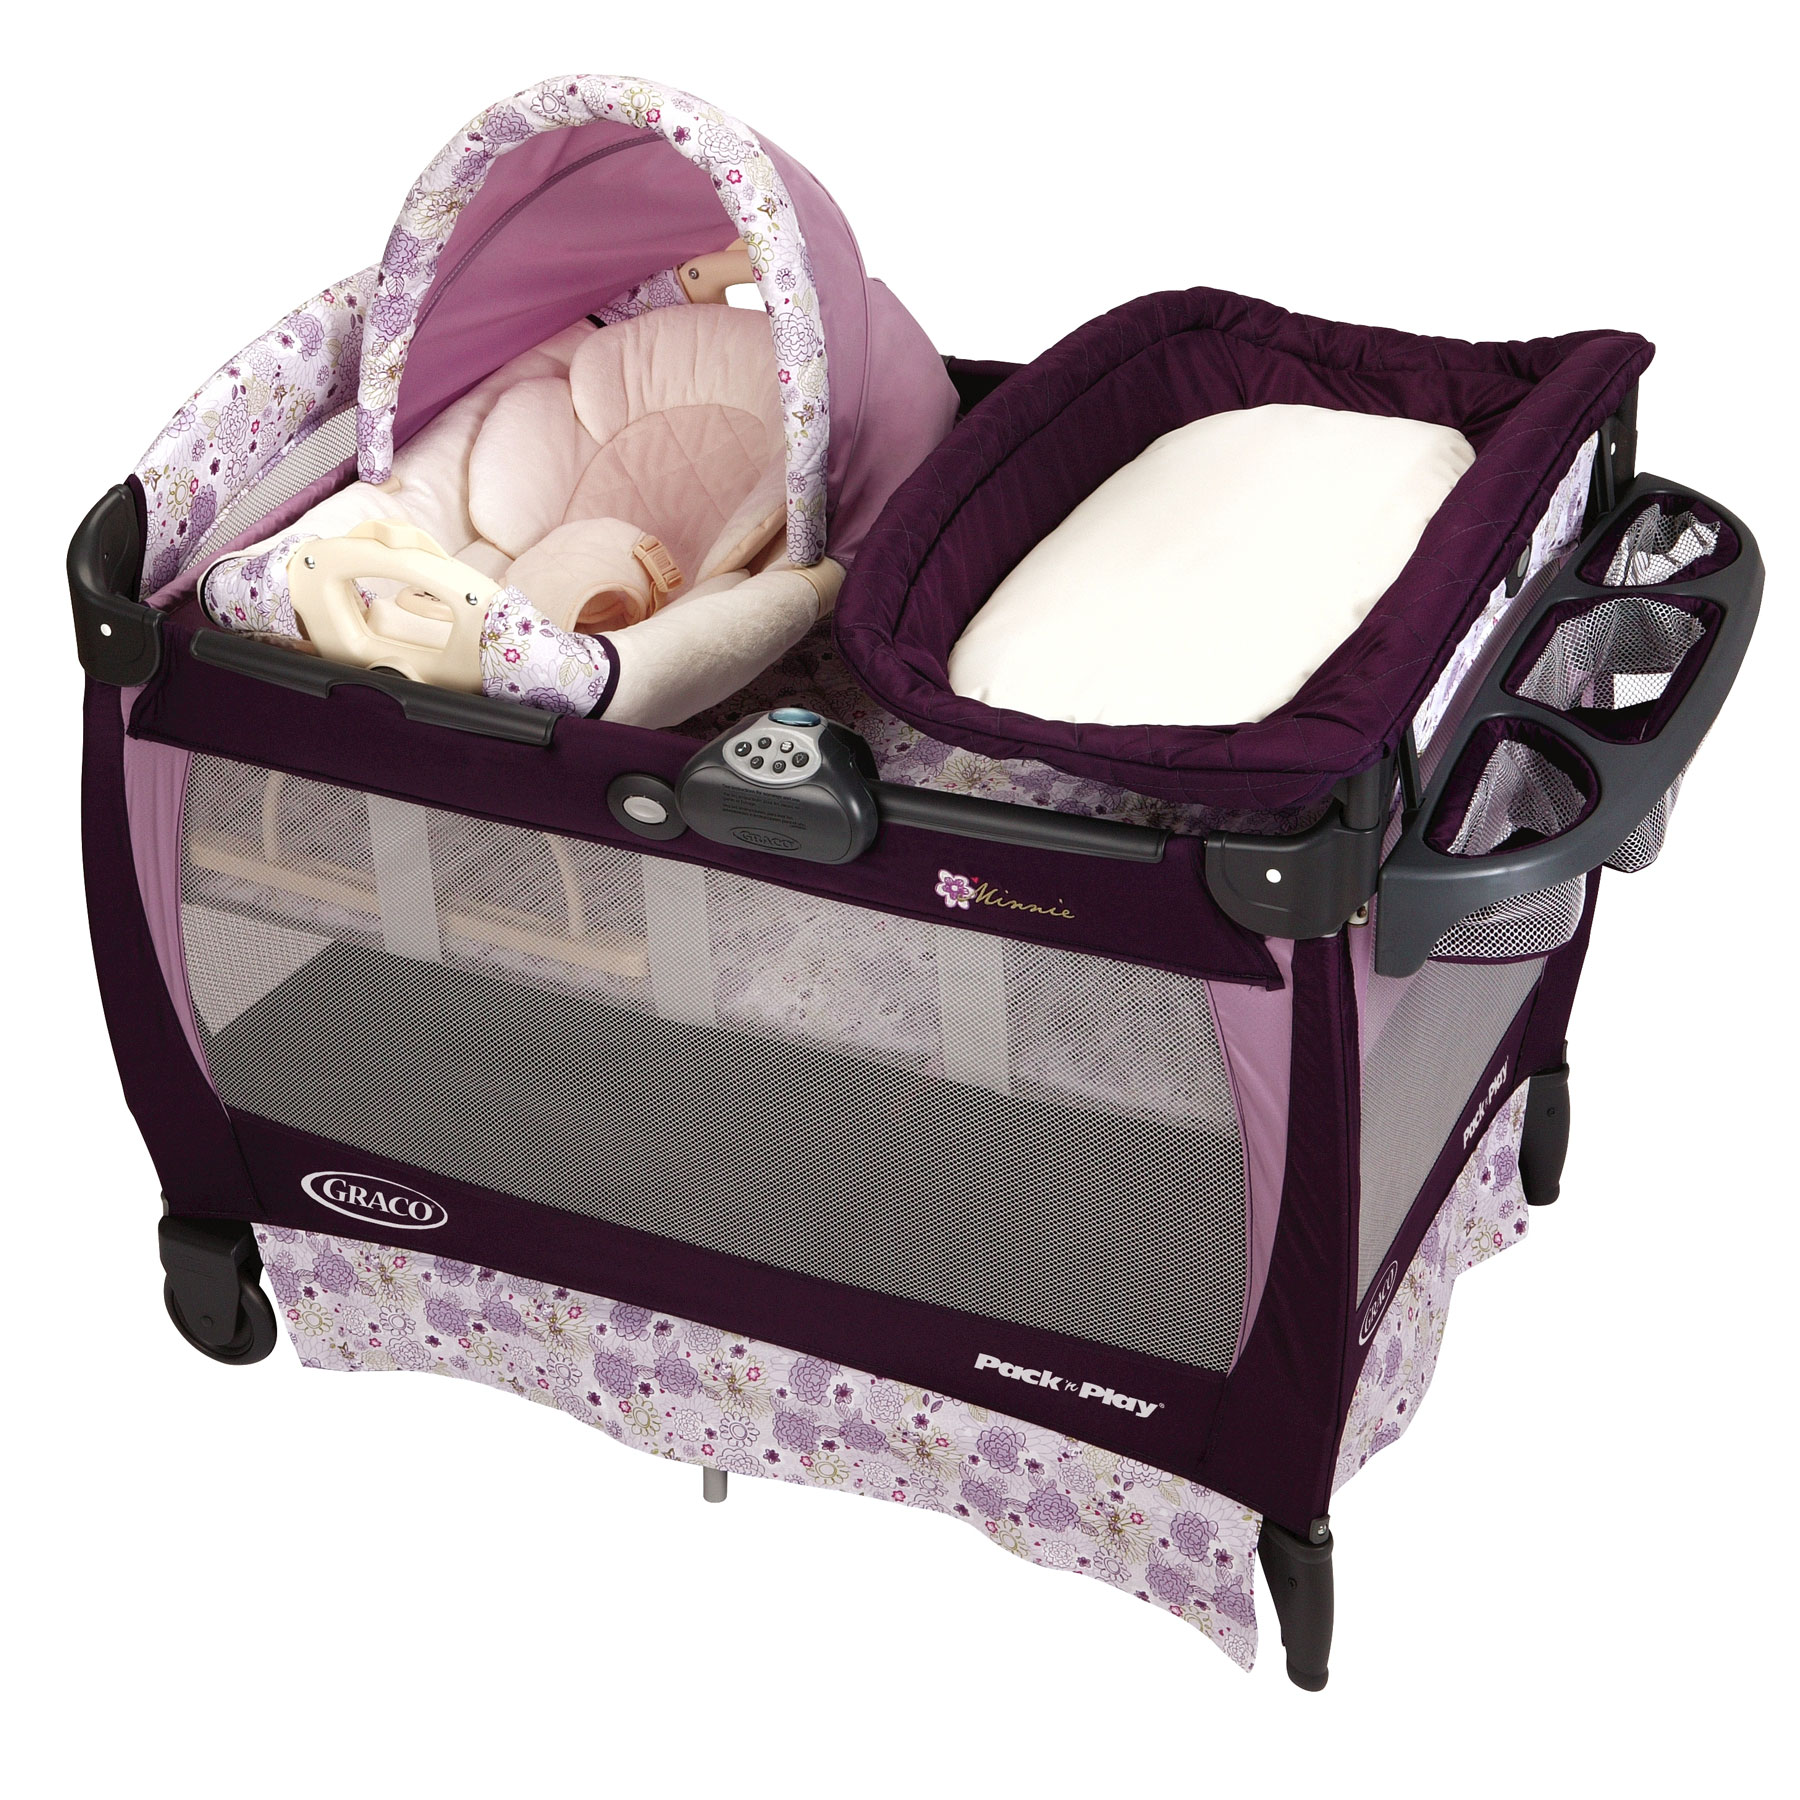 The Graco Pack N' Play With Bassinet | Baby Bassinets